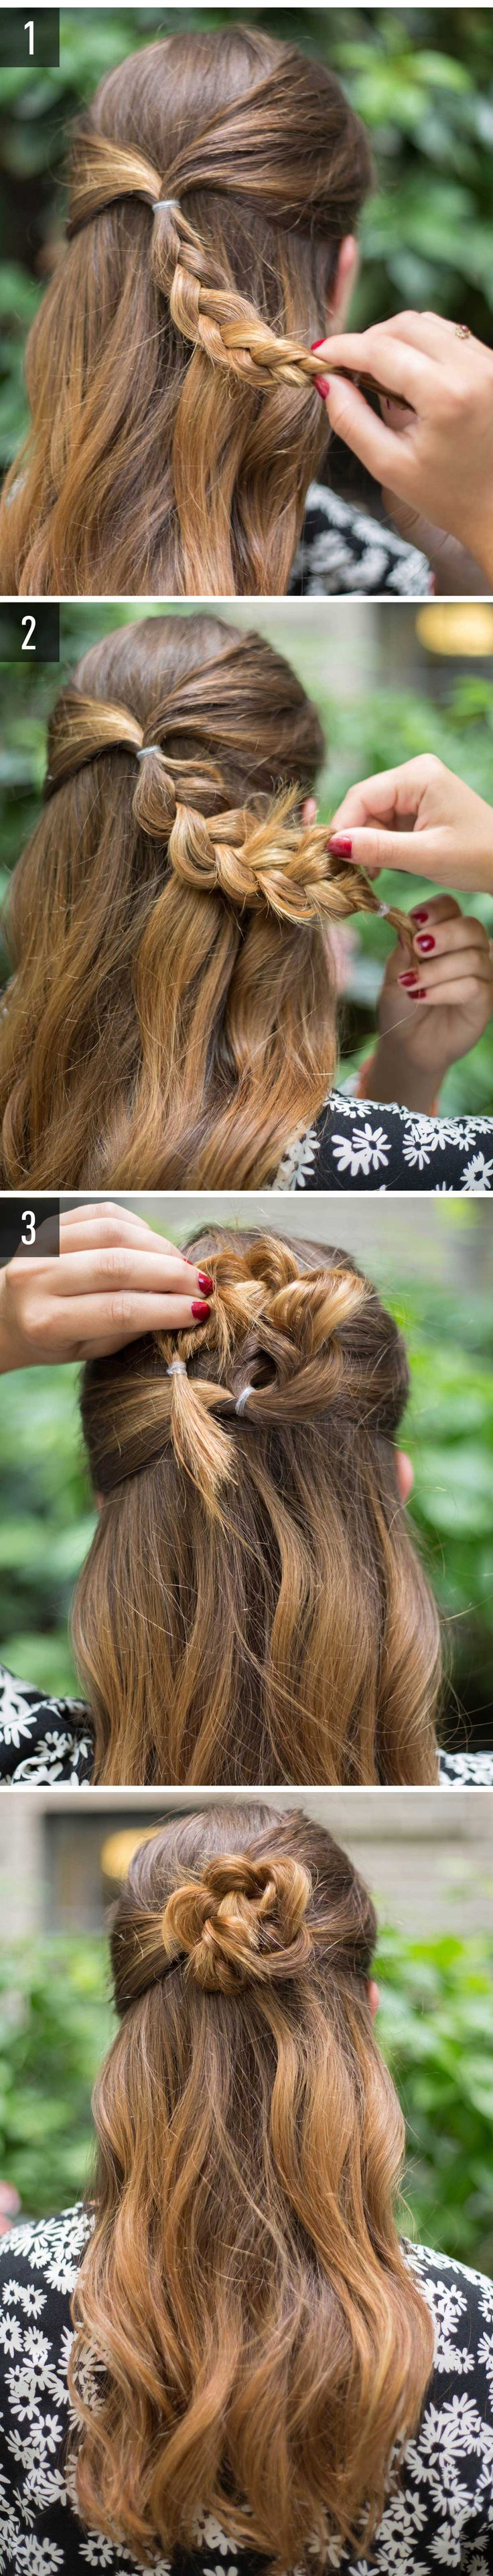 1-flower-braid